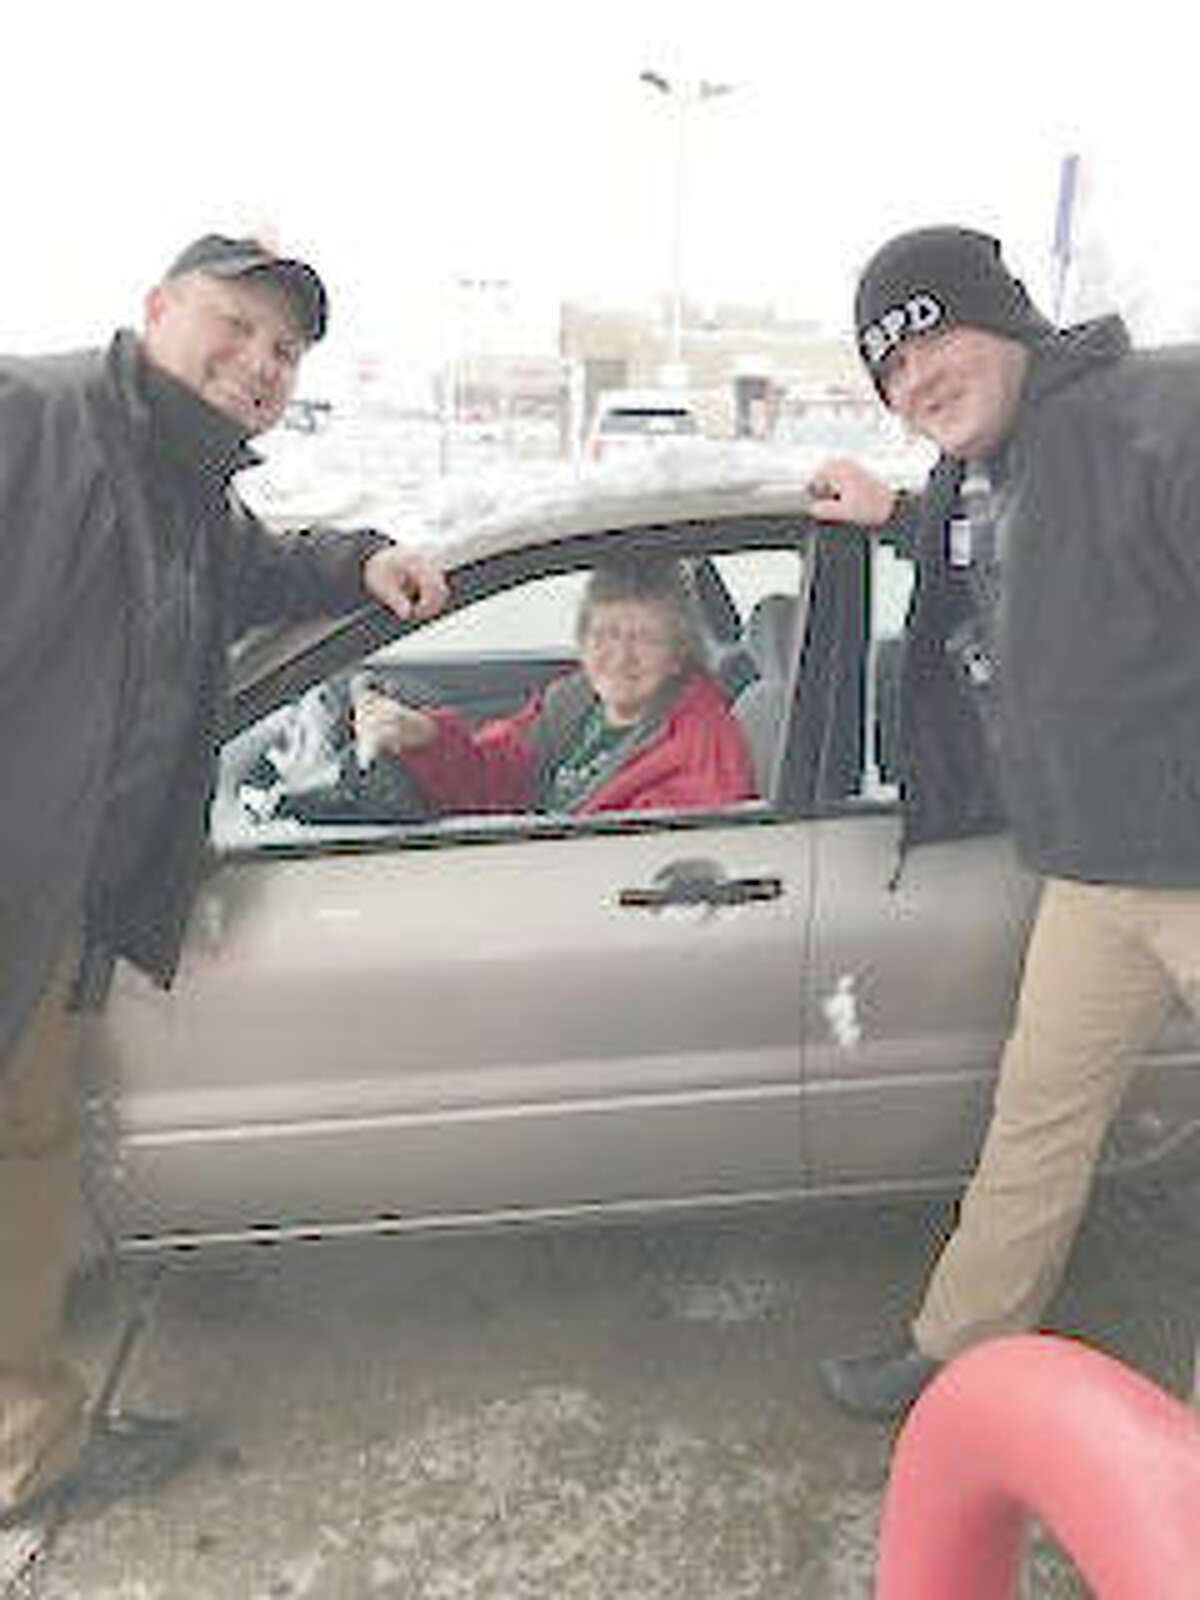 Bethalto Police Chief Greg Smock, left, and another BPD officer pose with a happy recipient of $20 in free gasoline Dec. 23 at the Hit-N-Run in Bethalto, compliments of Mustache March 4PD.